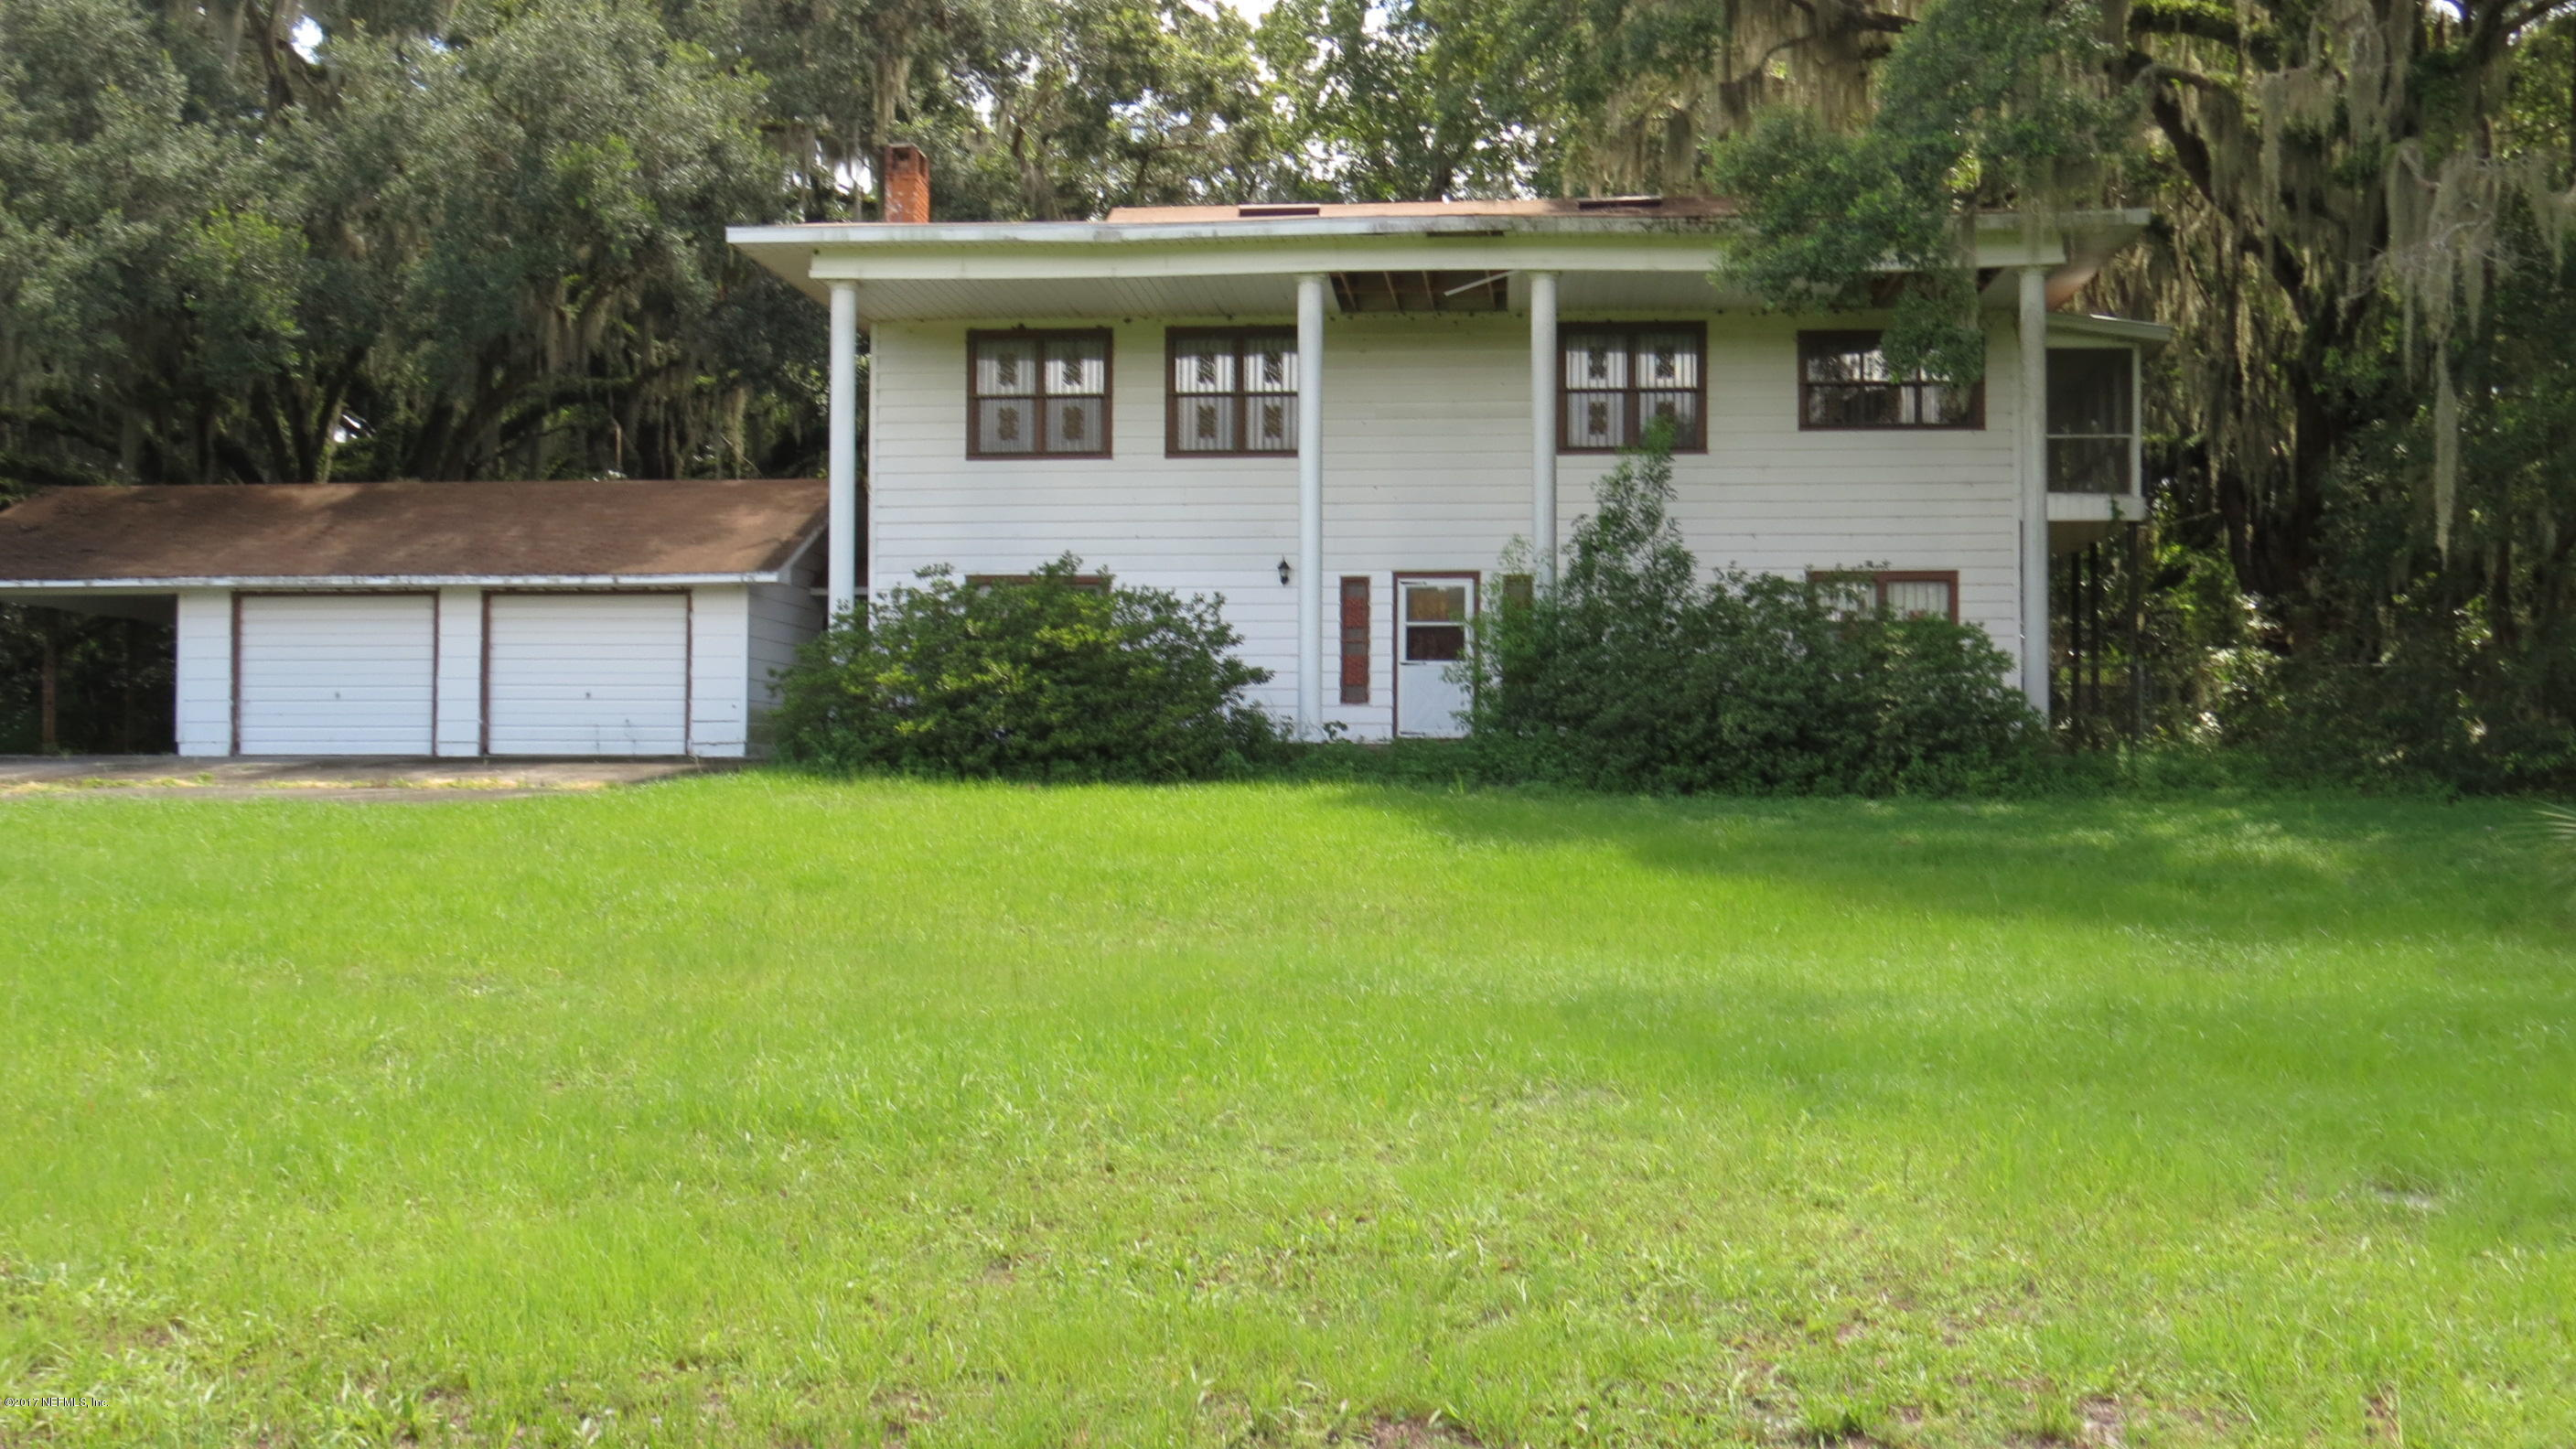 209 CARRIER, CRESCENT CITY, FLORIDA 32112, 4 Bedrooms Bedrooms, ,3 BathroomsBathrooms,Residential - single family,For sale,CARRIER,891293